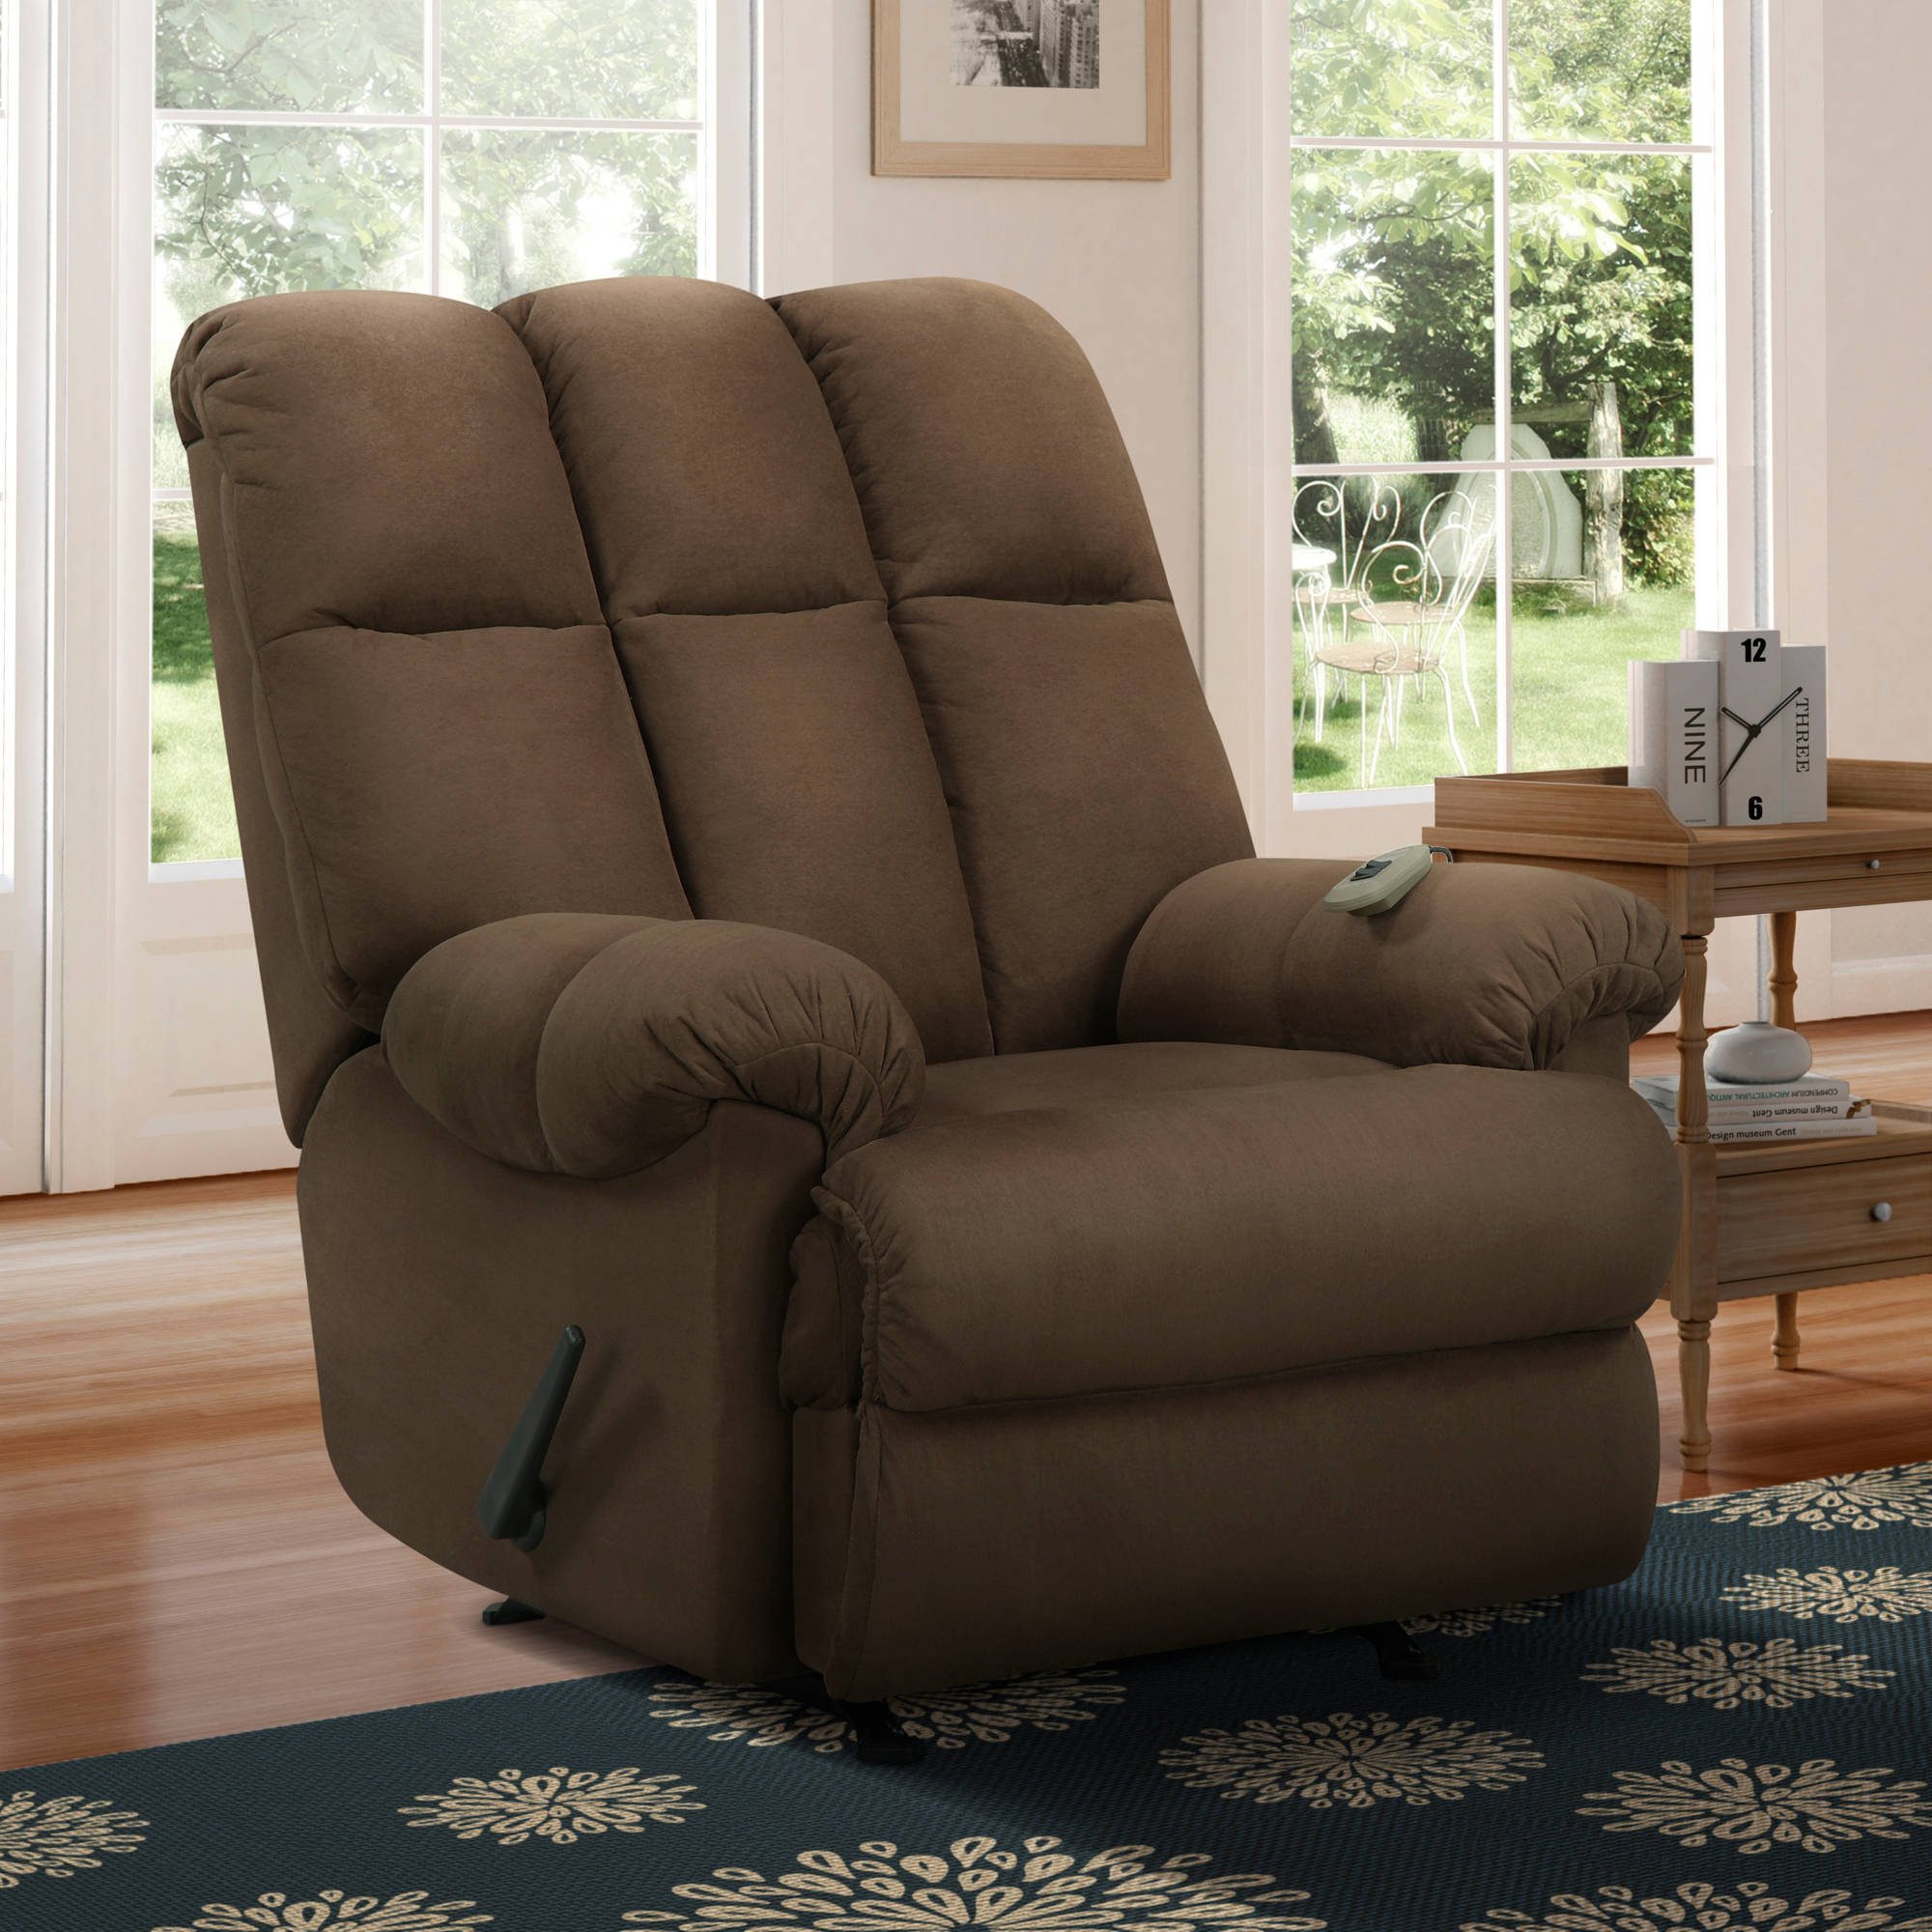 recliner charming wingback room adult living best recliners couch small chairs your for perfect riser